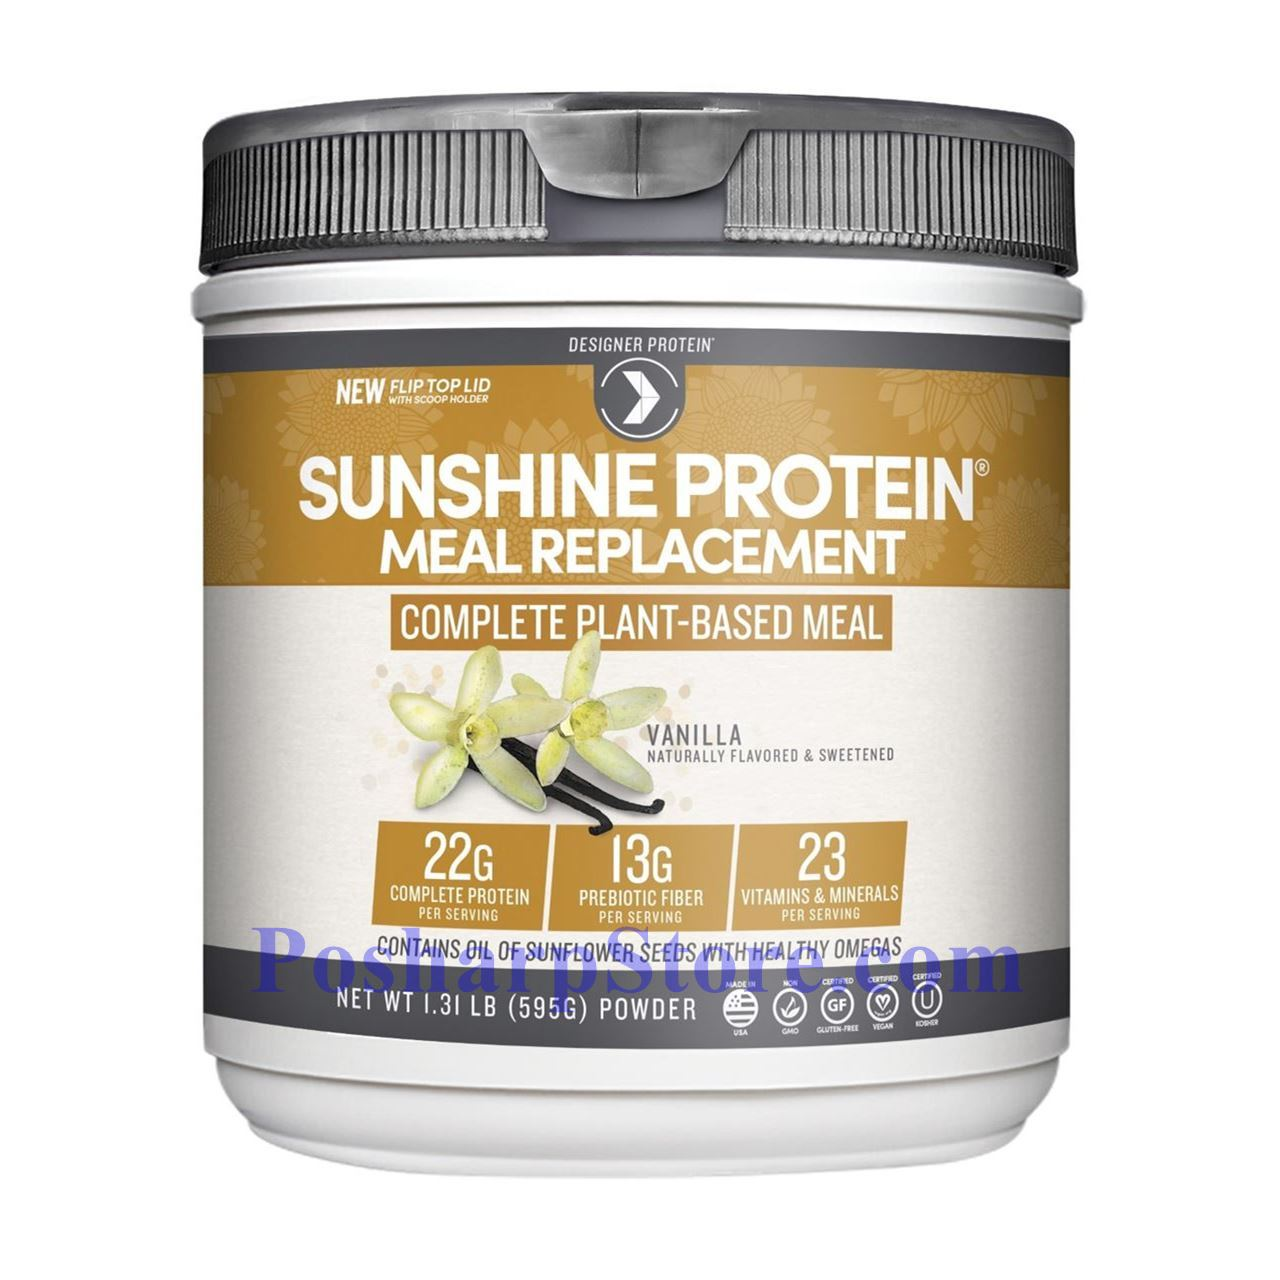 Picture for category Designer Protein Sunshine Protein Plant Based Meal Replacement Vanilla Flavor 1.19 lbs 10 Servings